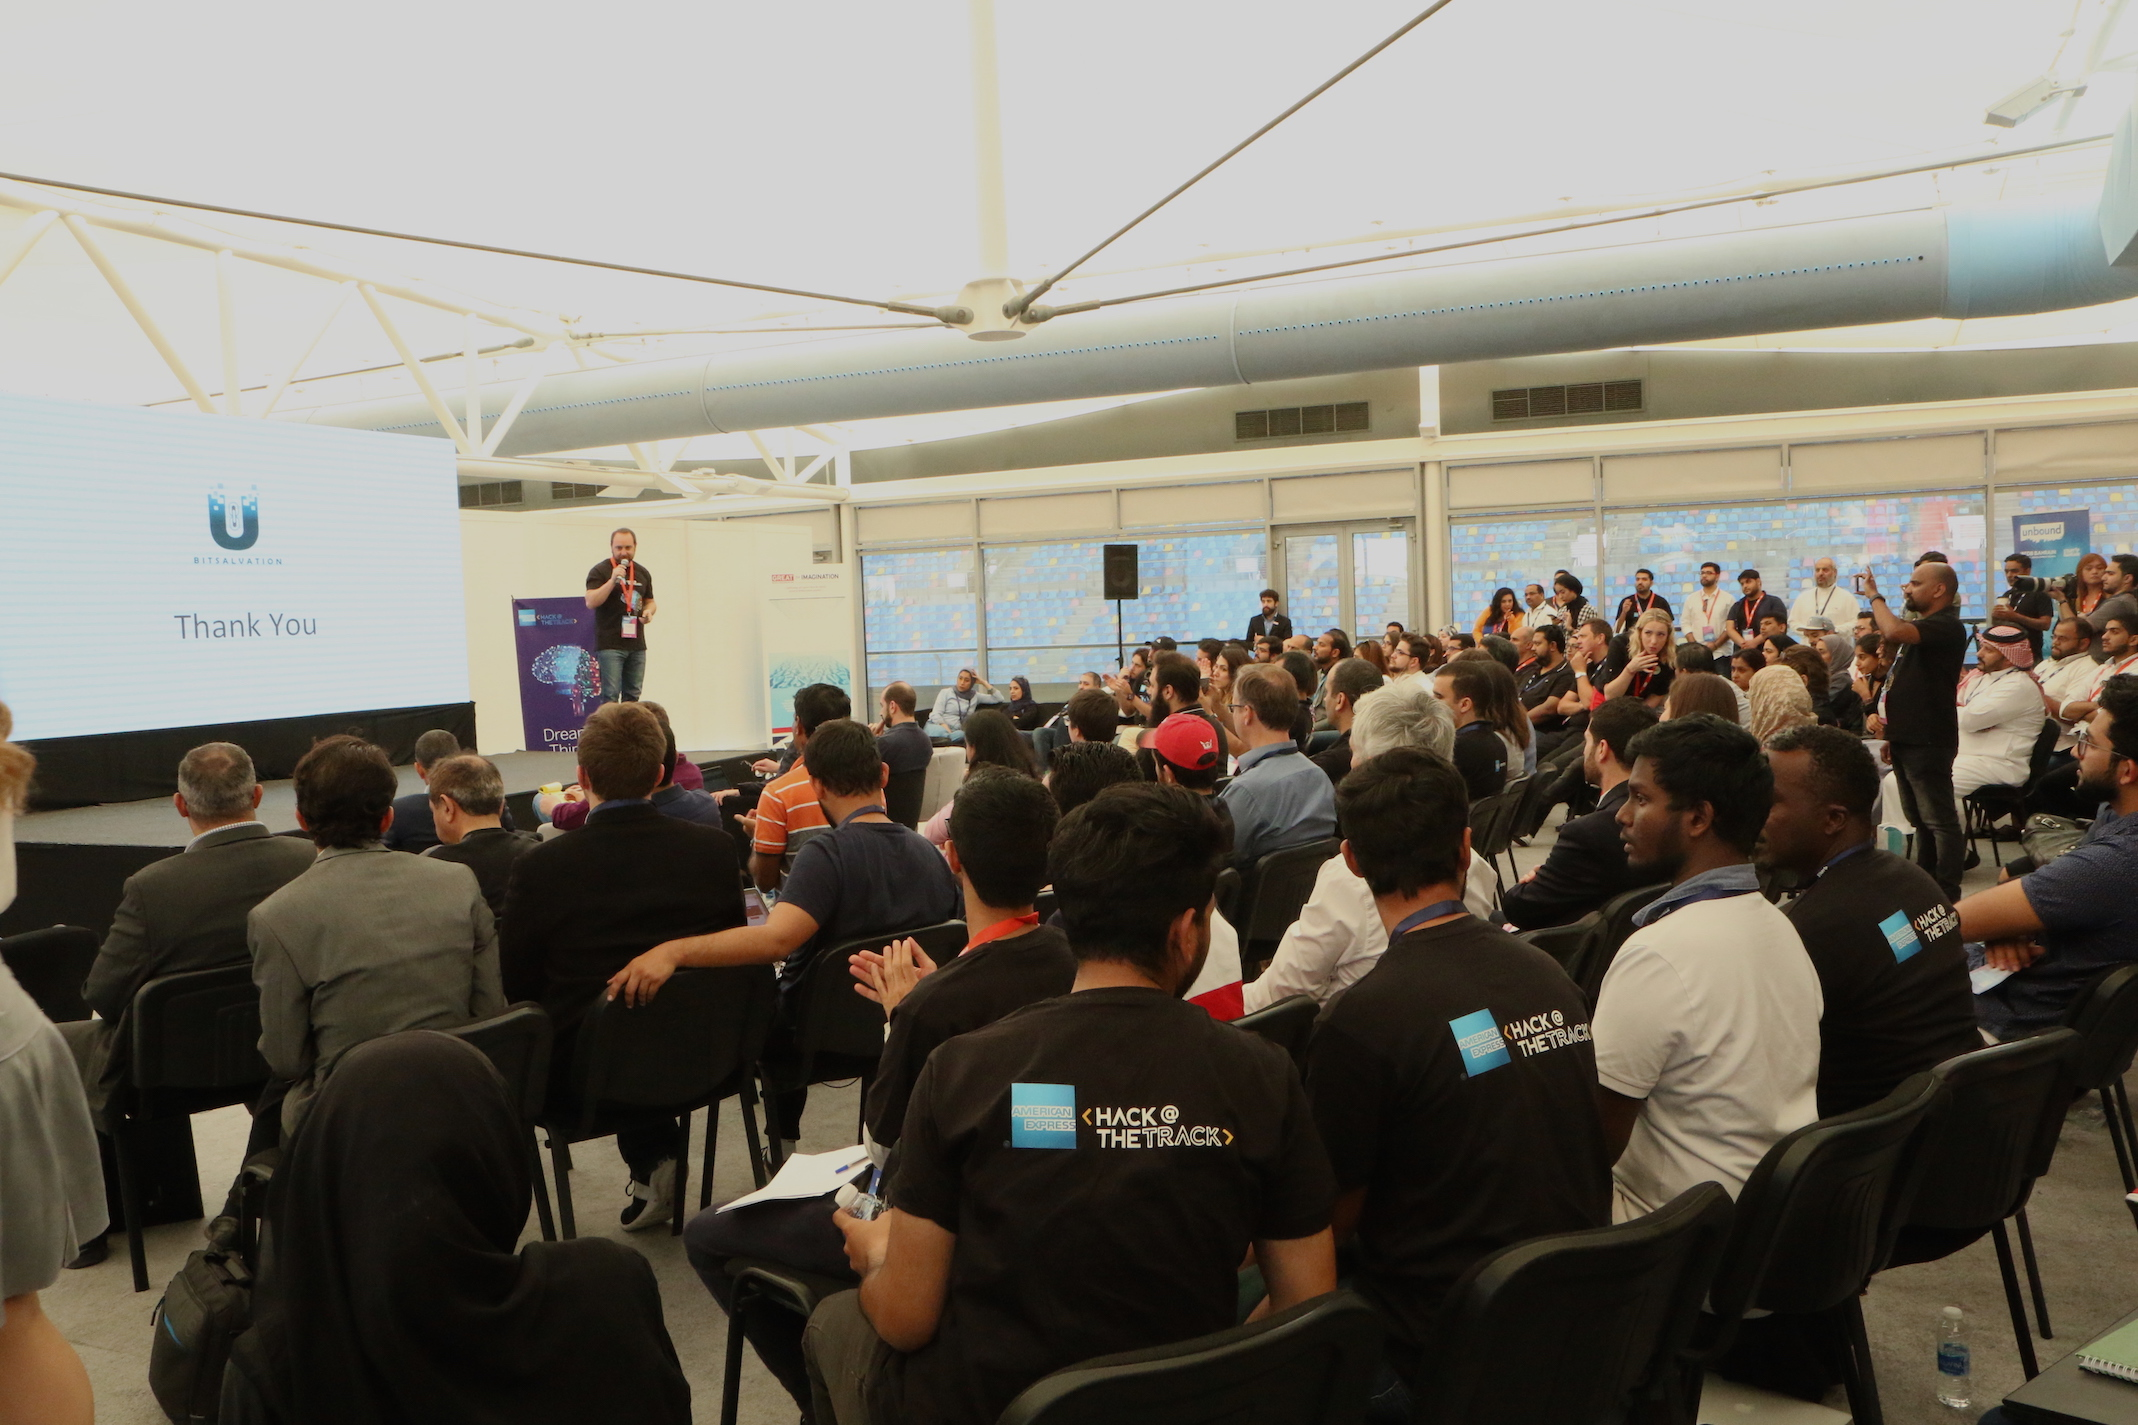 Missed StartUp Bahrain Week? Here are some of the BEST highlights